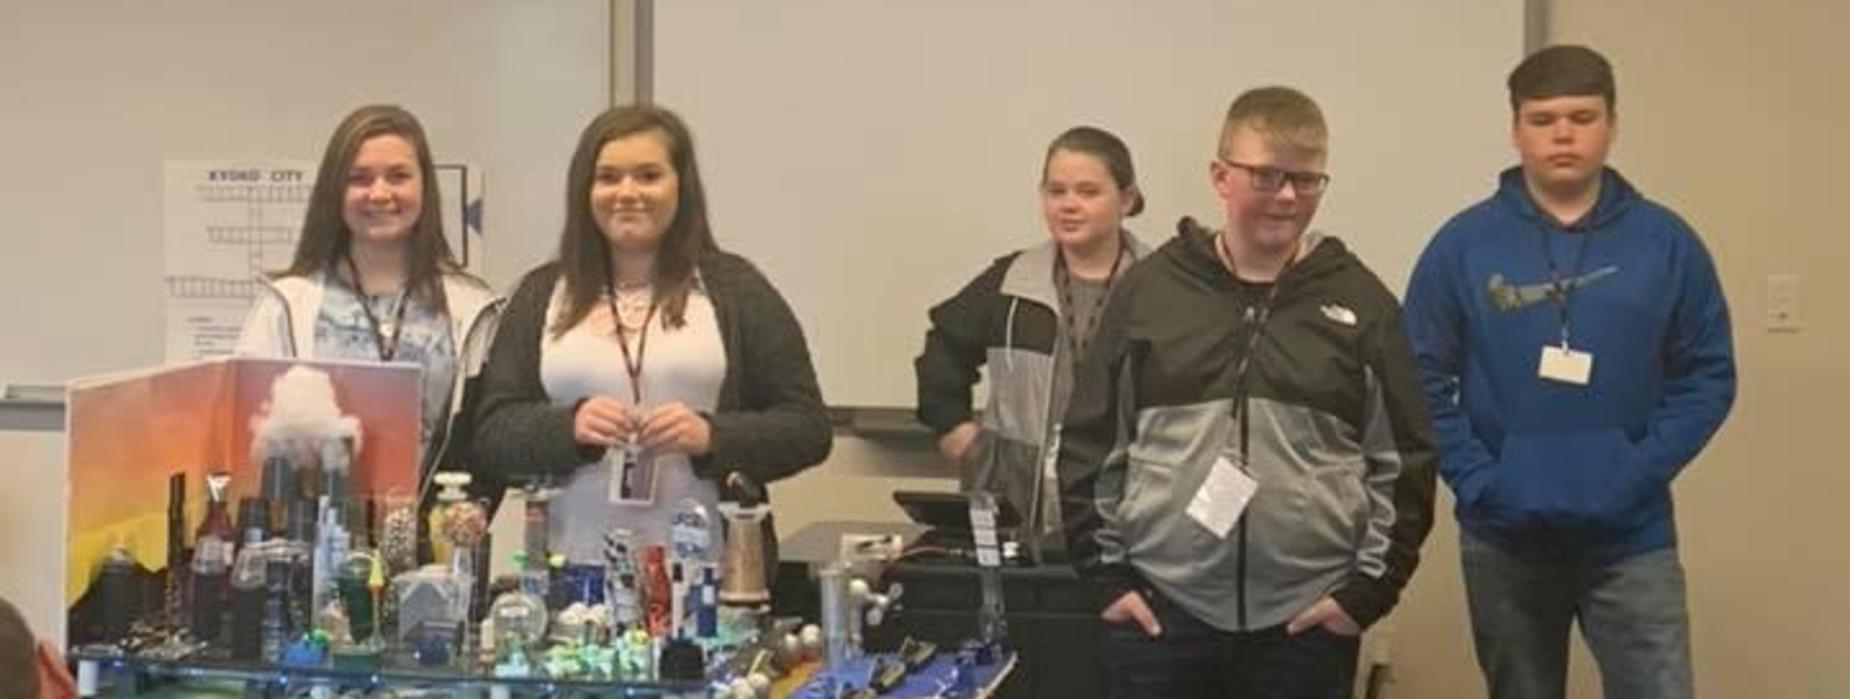 Vonore Middle students present their project to judges